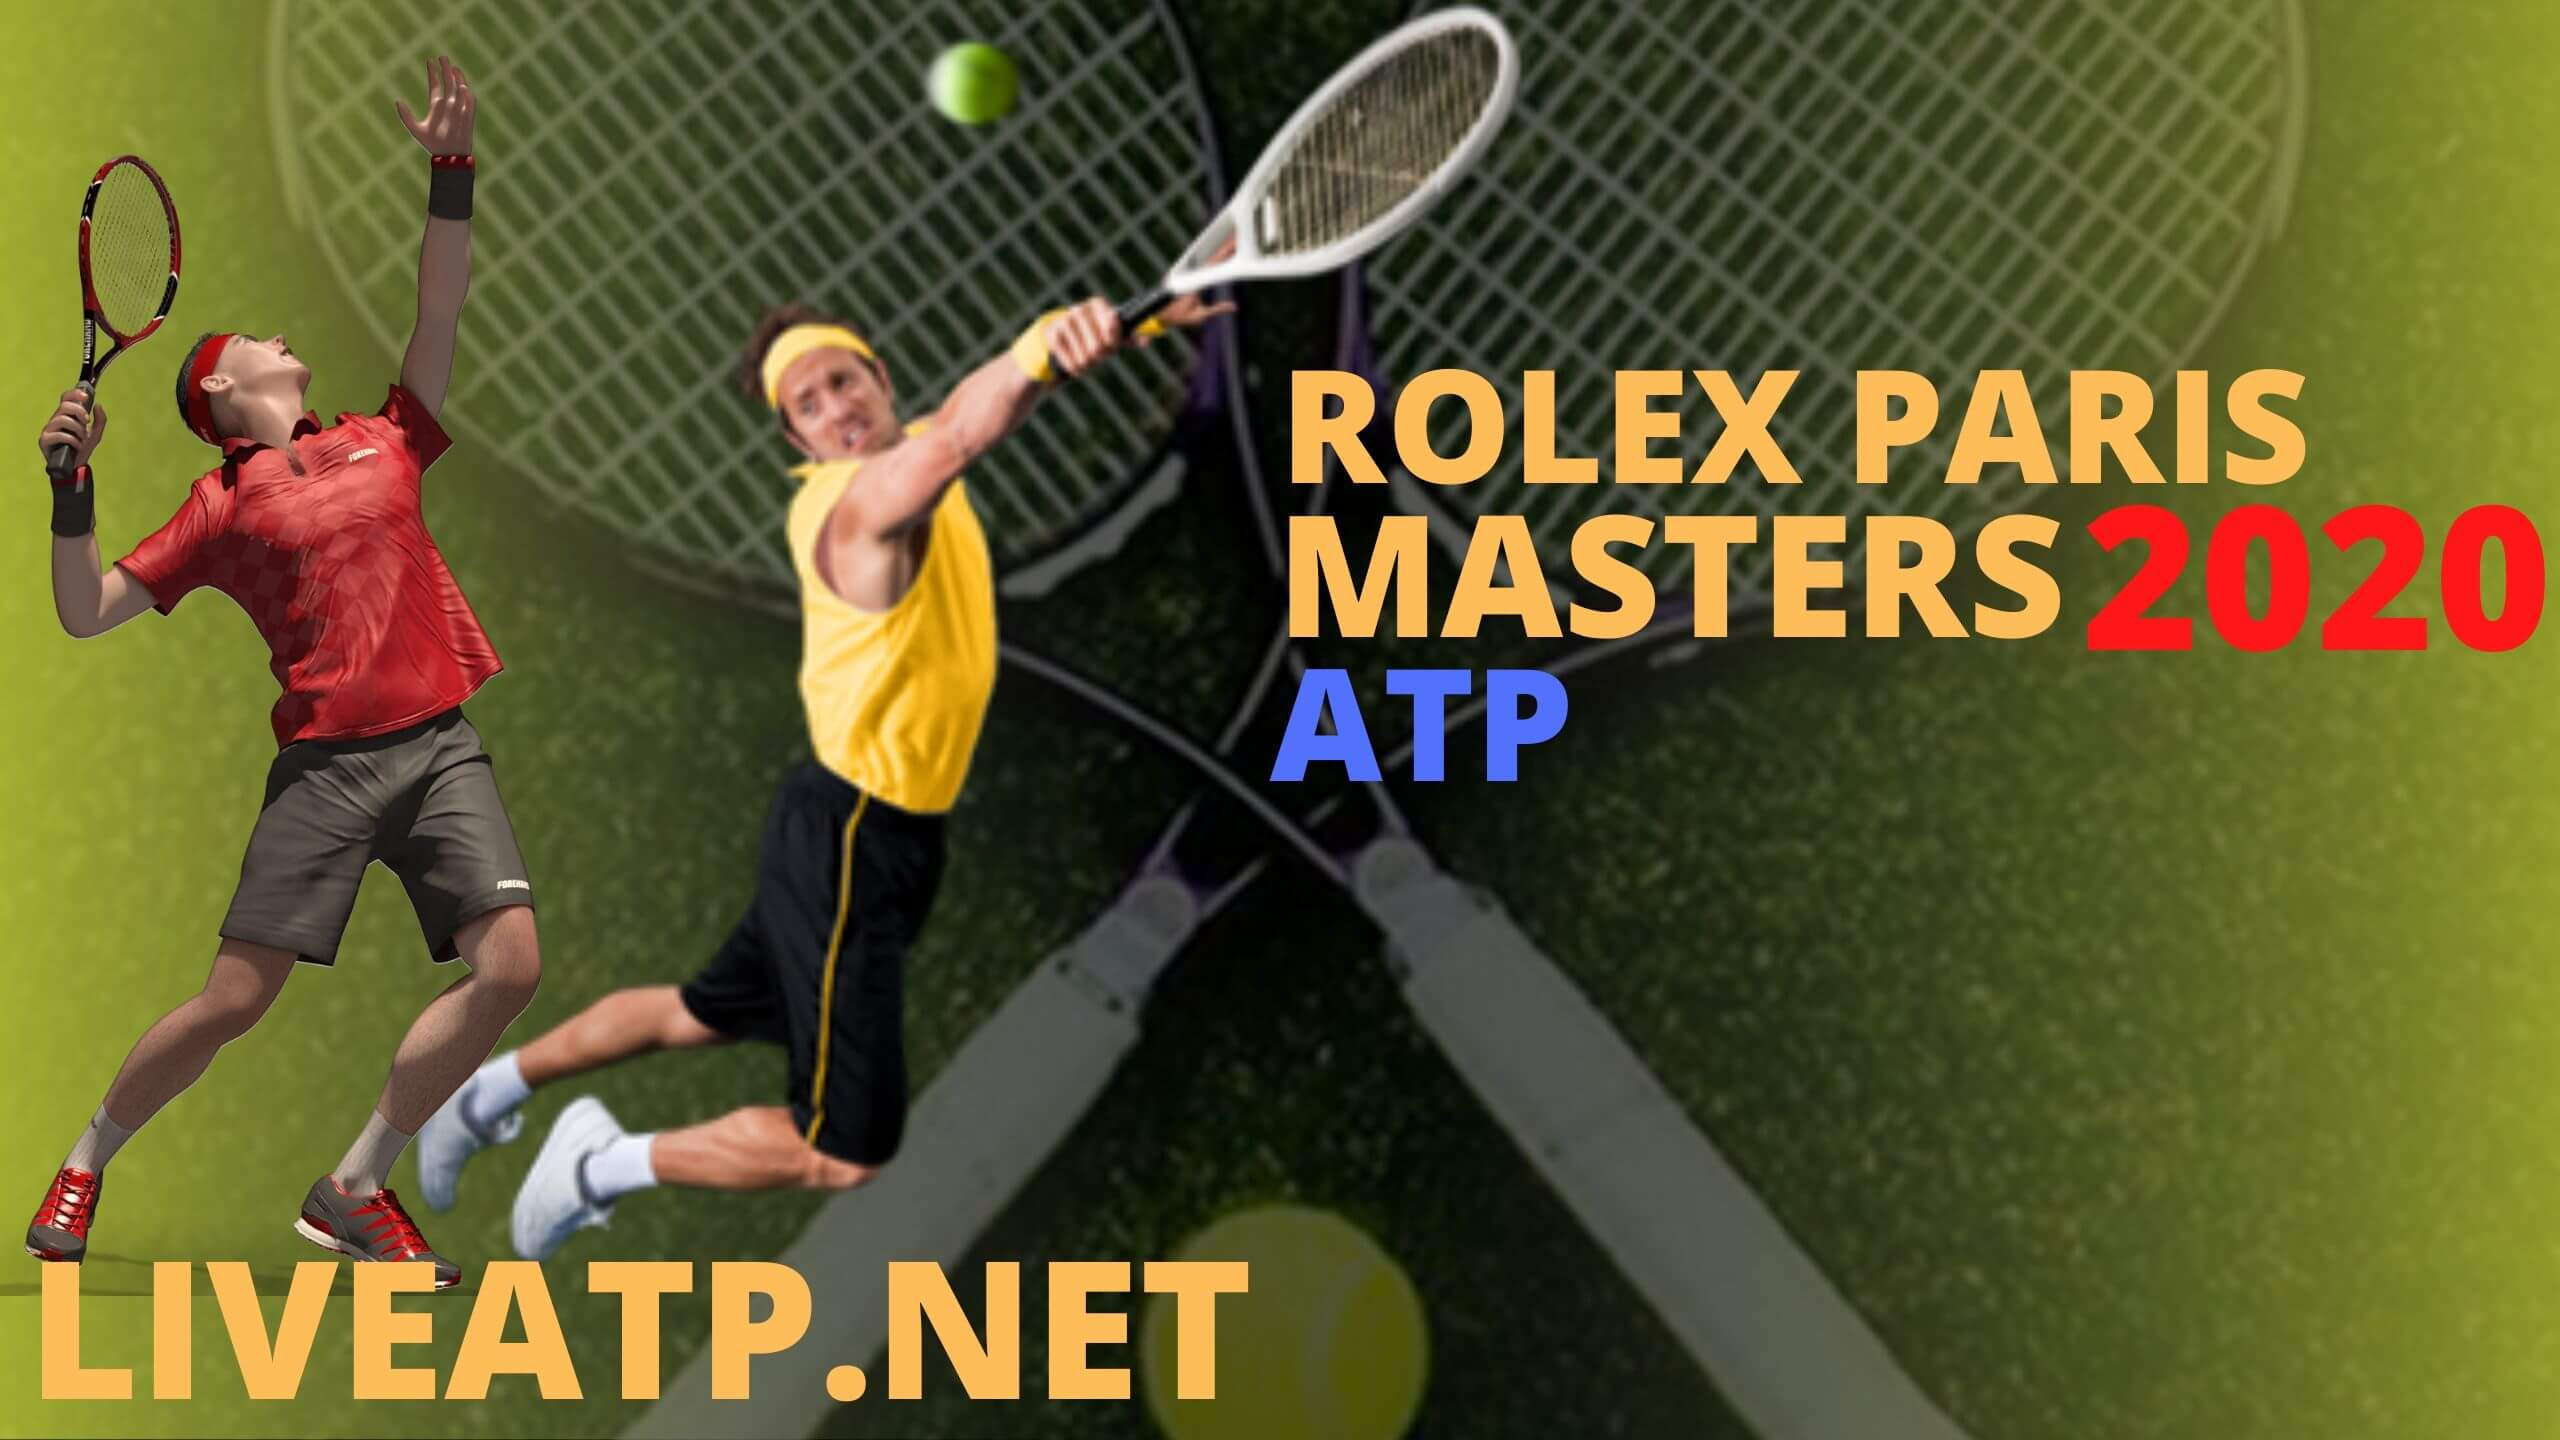 Rolex Paris Masters Live Stream 2020 | Day 3